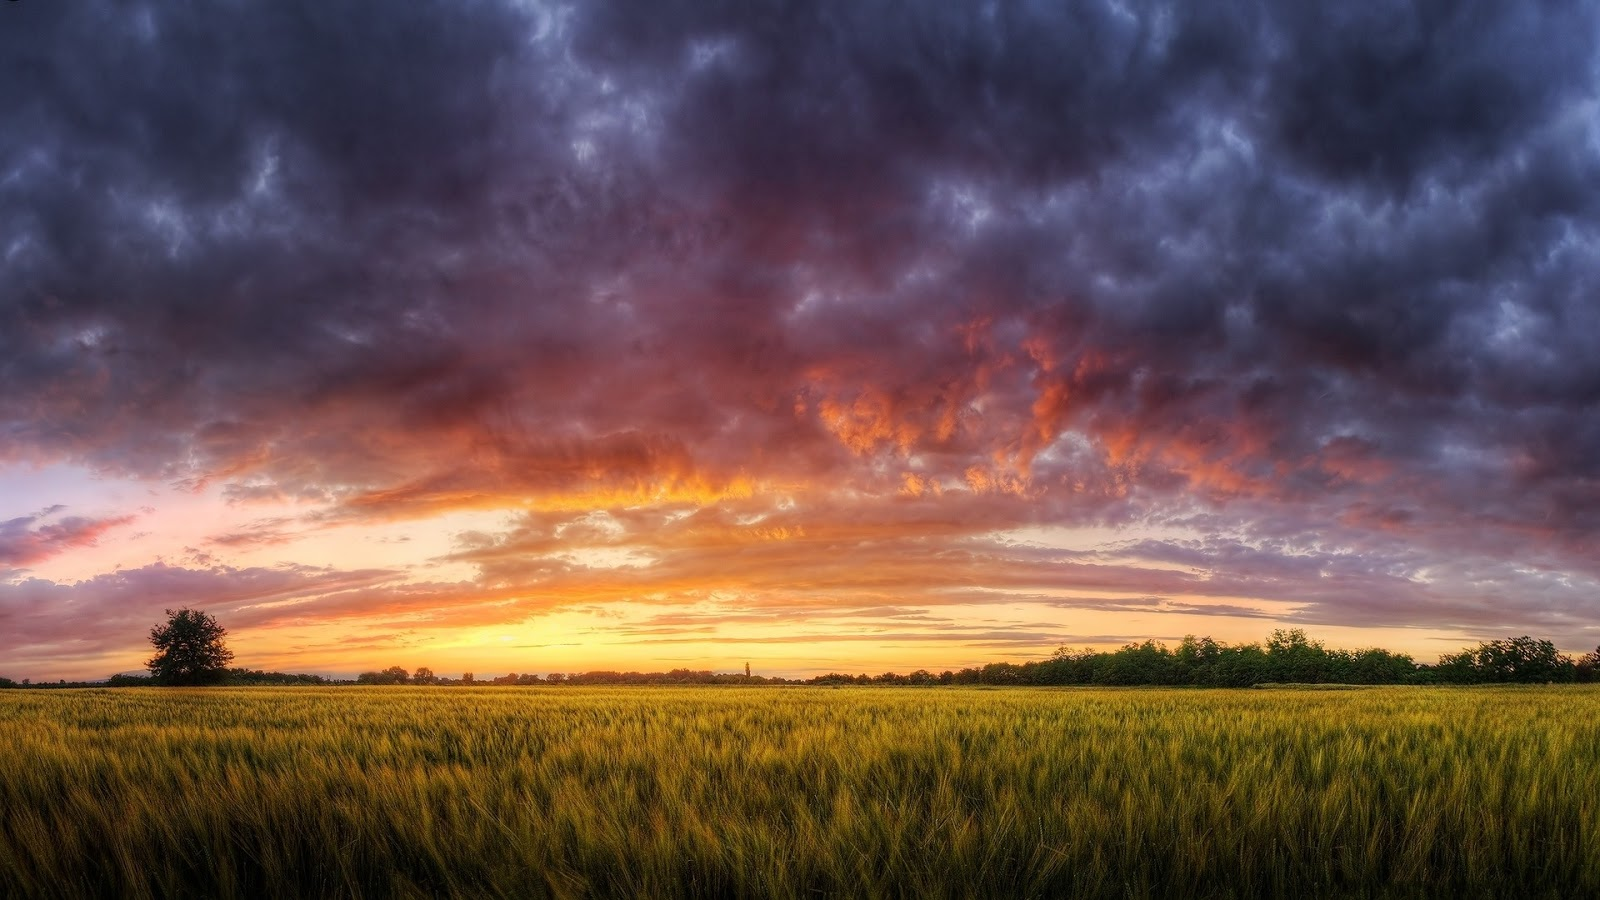 Amazing Sunset in grass field